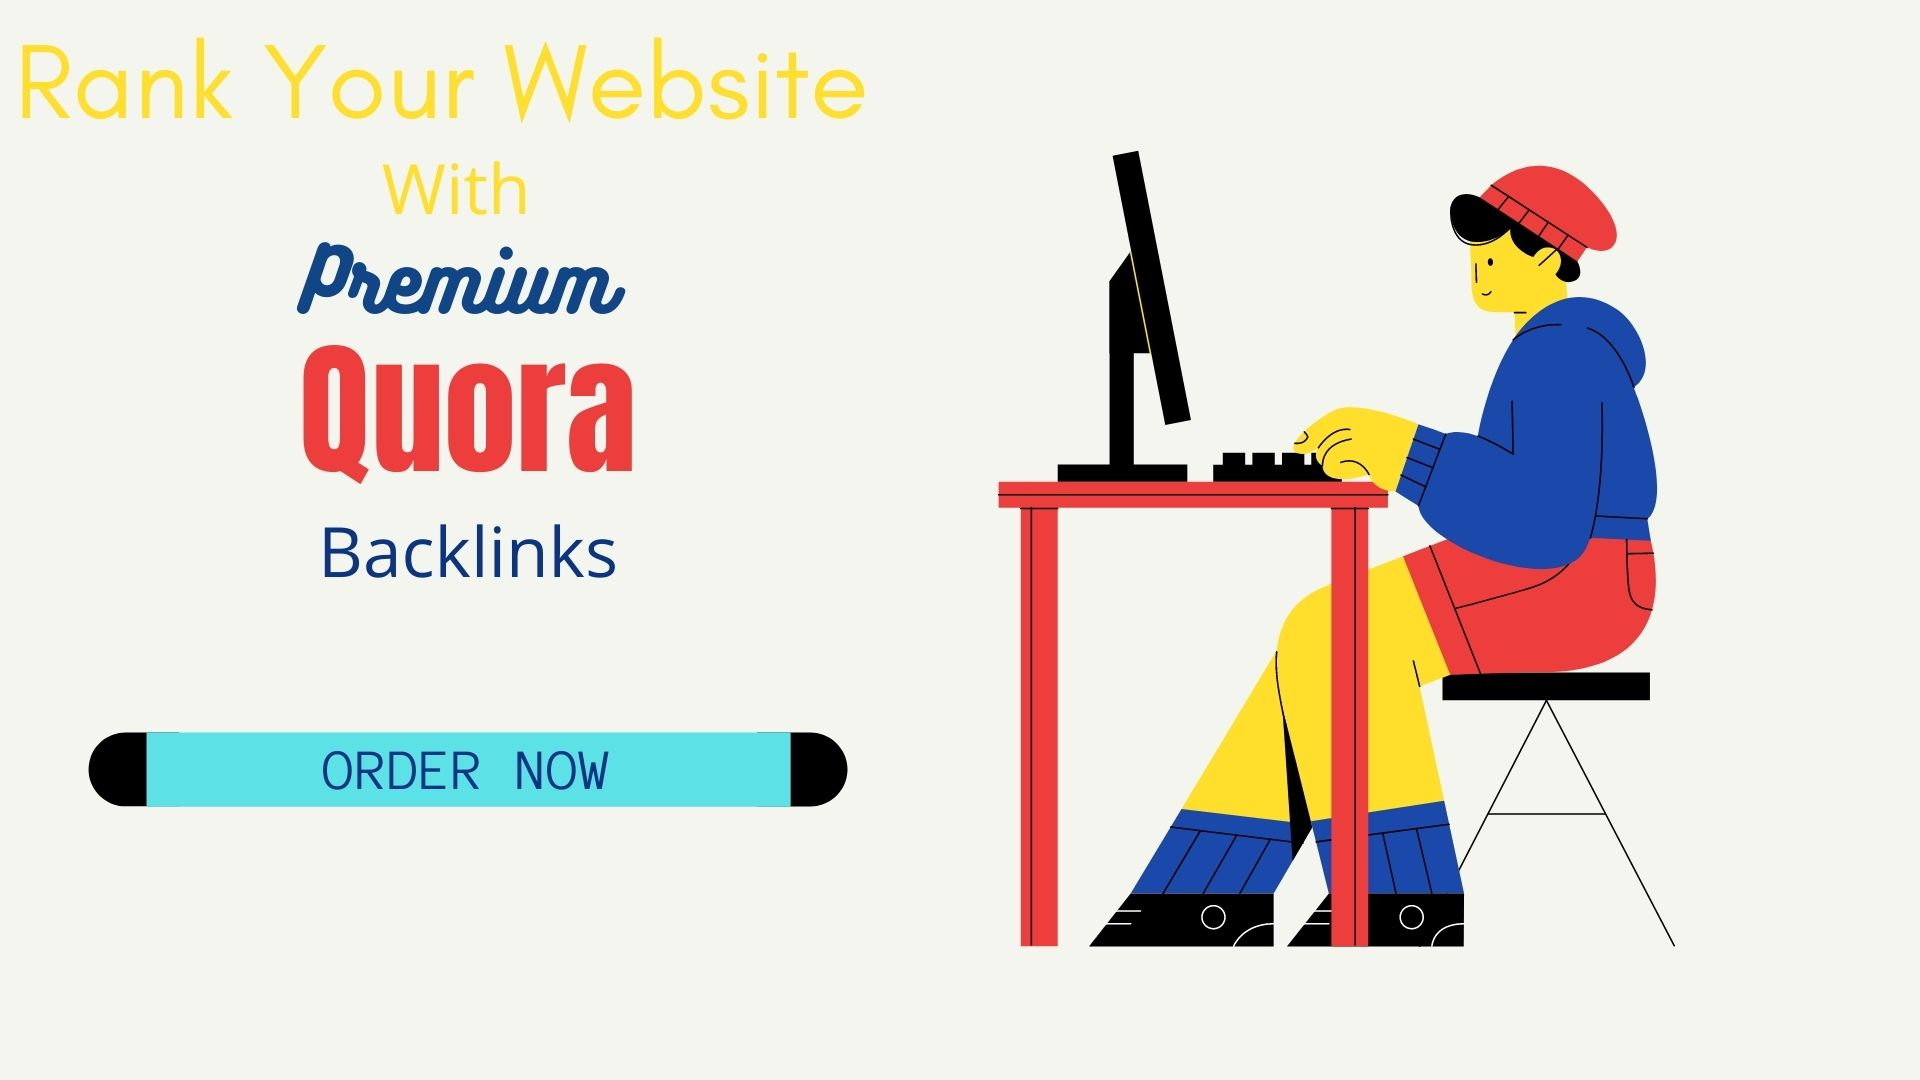 50 Quora Backlinks to promote website